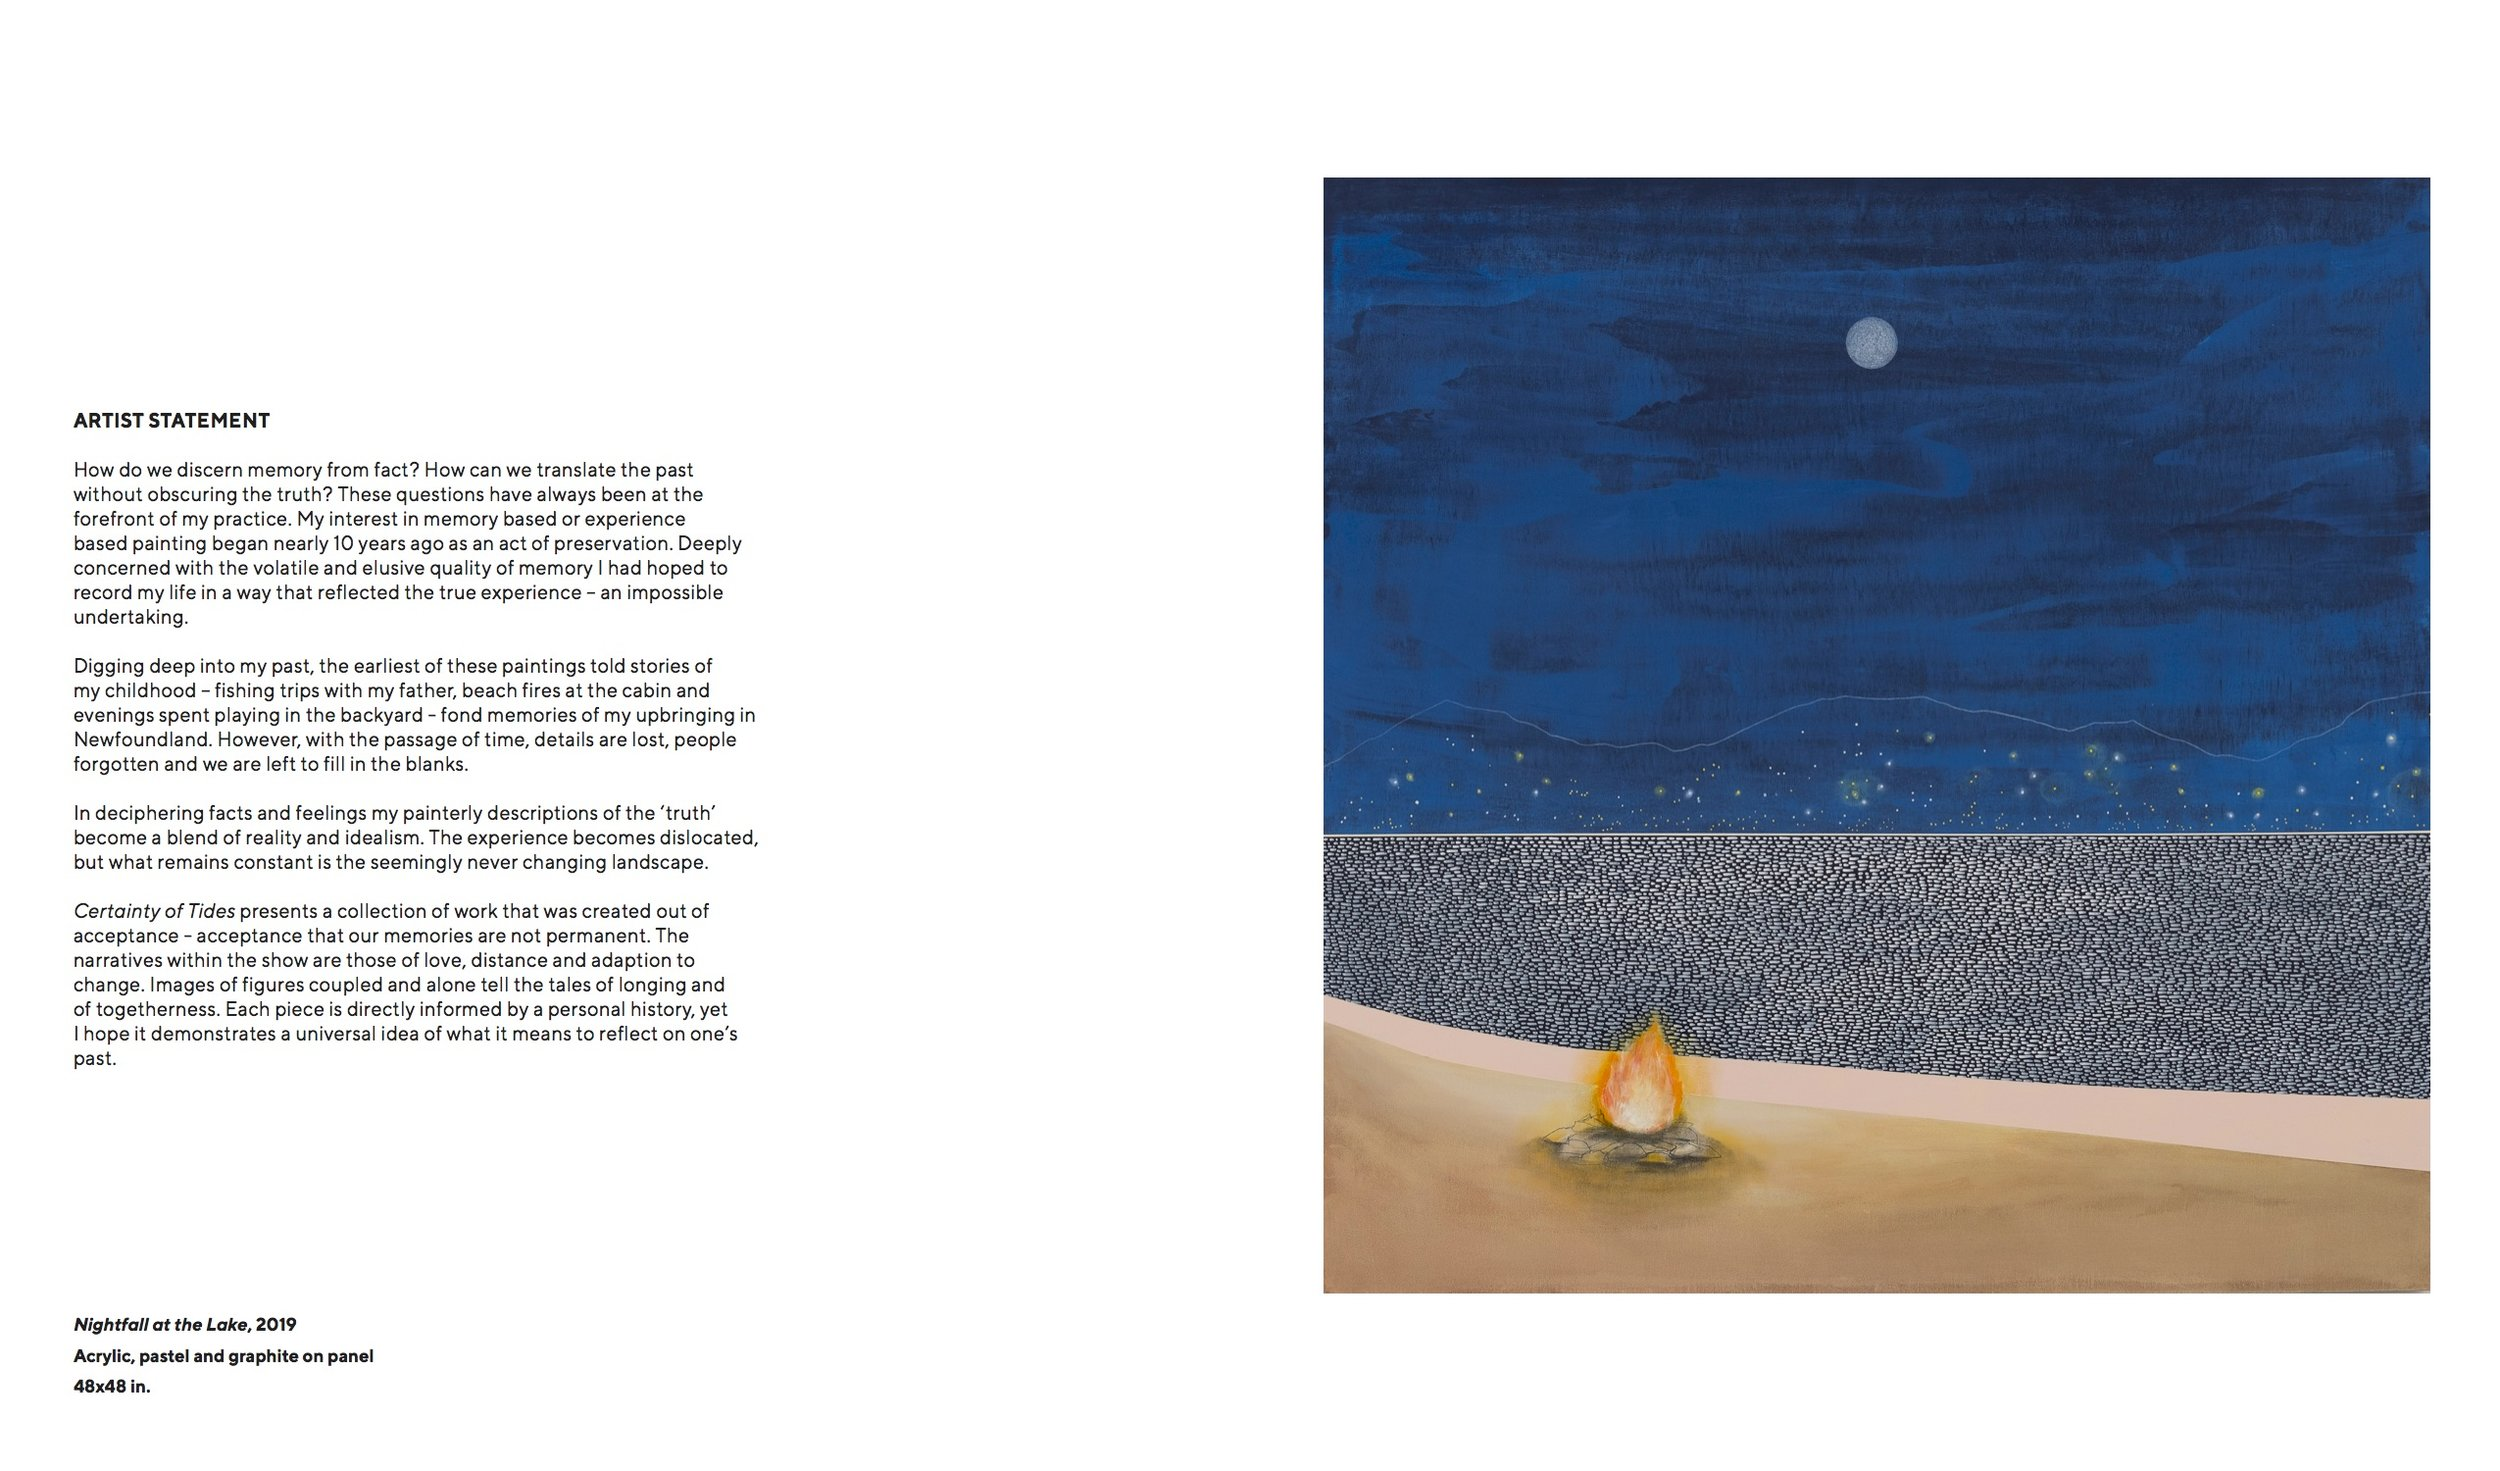 Catalogue for Mike Gough's 'Certainty of Tides' — Jones Gallery